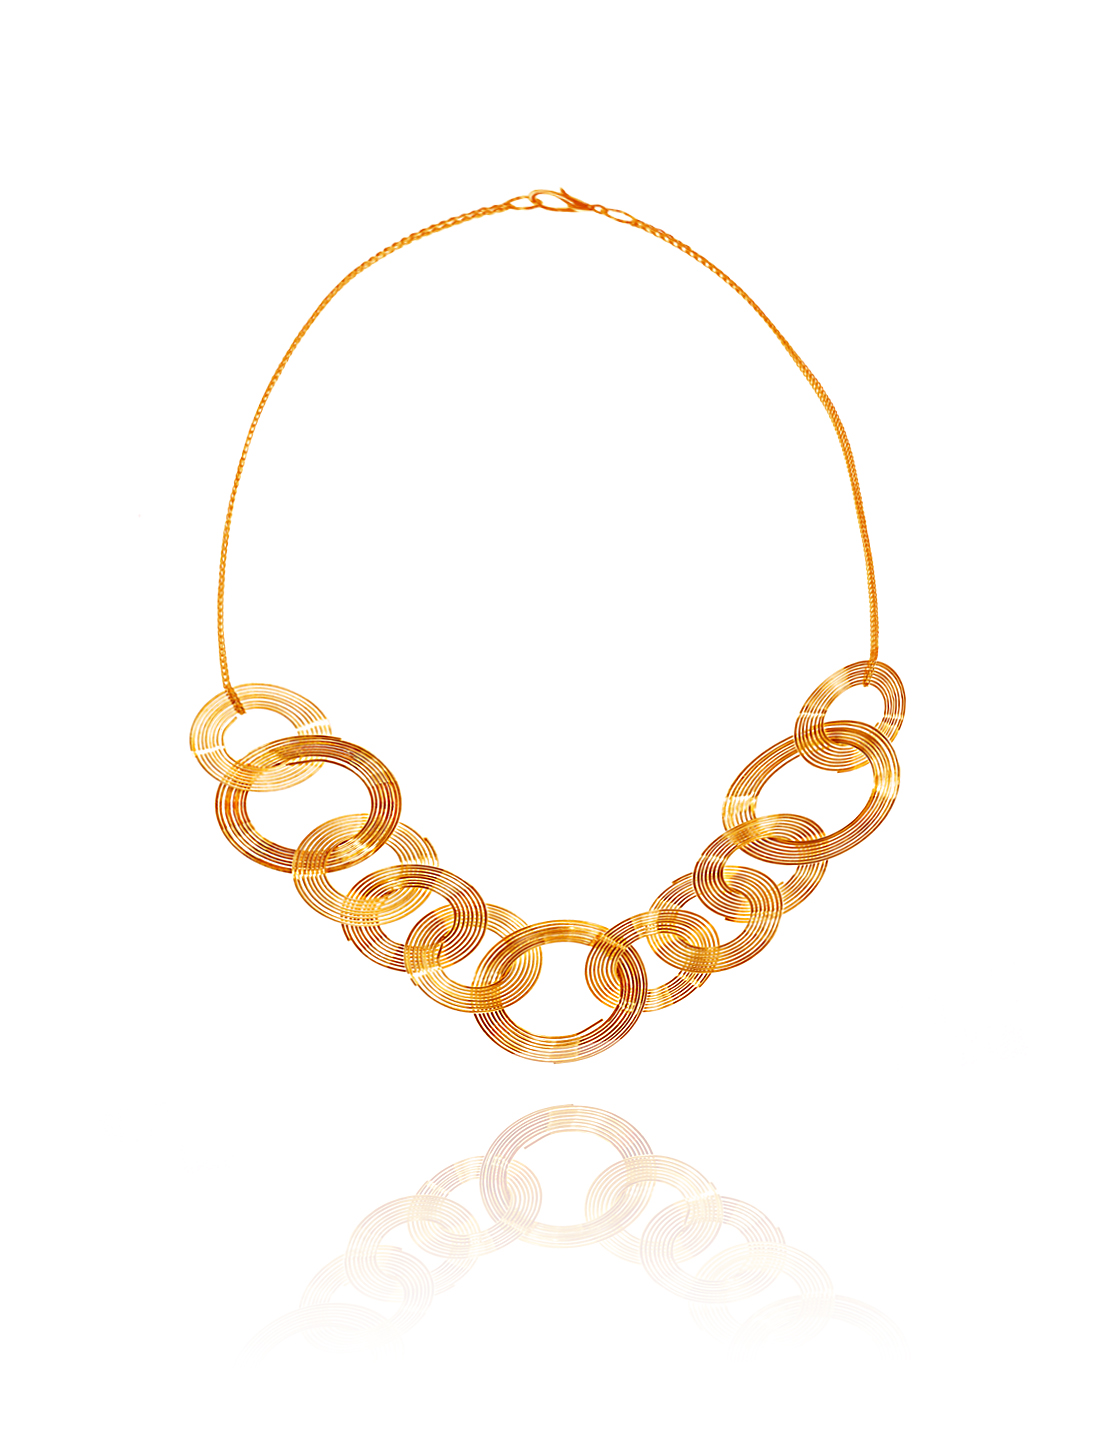 Gold Circle Statement Alloy Pendant Chain Bib Chunky Necklace Choker